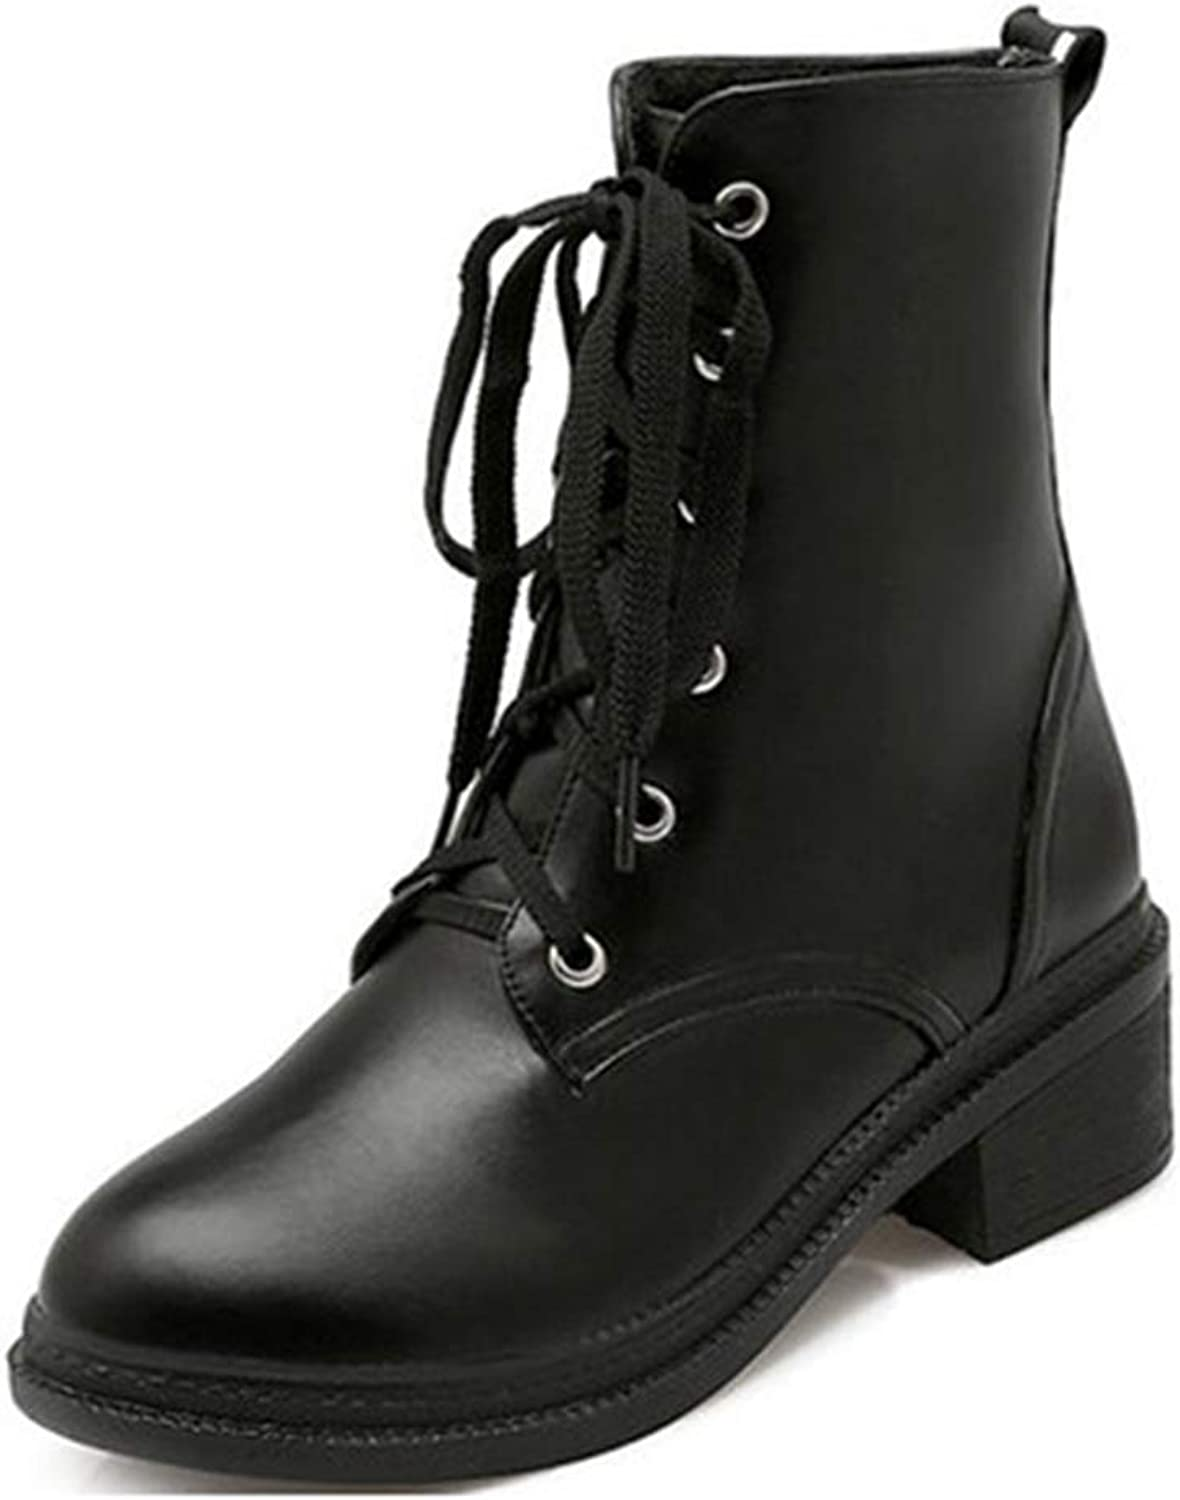 GIY Women's Round Toe Lace Up Martin Ankle Boots Fashion Platform Comfortable Bootie Mid Heel Short Boots